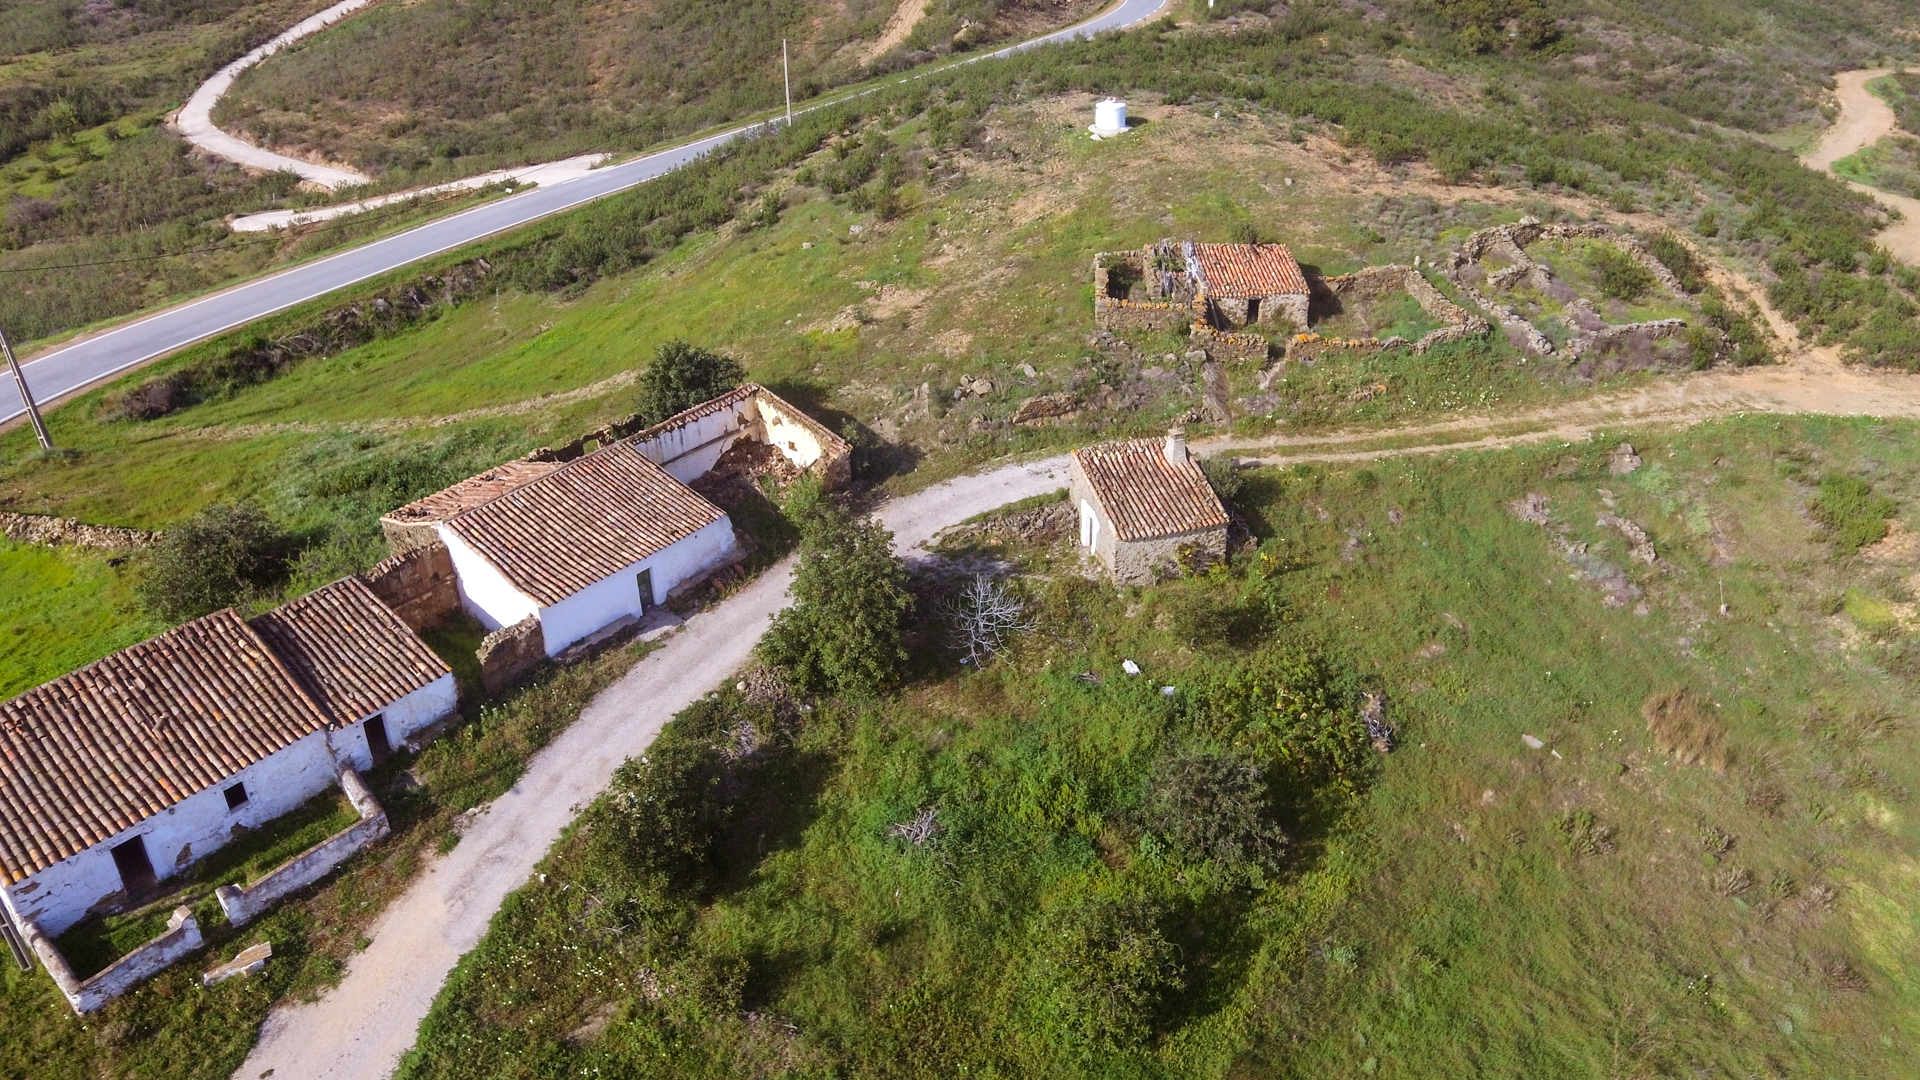 Investment Opportunity: Plot with Ruins and Sea Views, close to Tavira, East Algarve | TV1573 Plot with building and adjacent ruins to be restored or rebuilt. Hilltop location, good access and great views, close to Tavira.